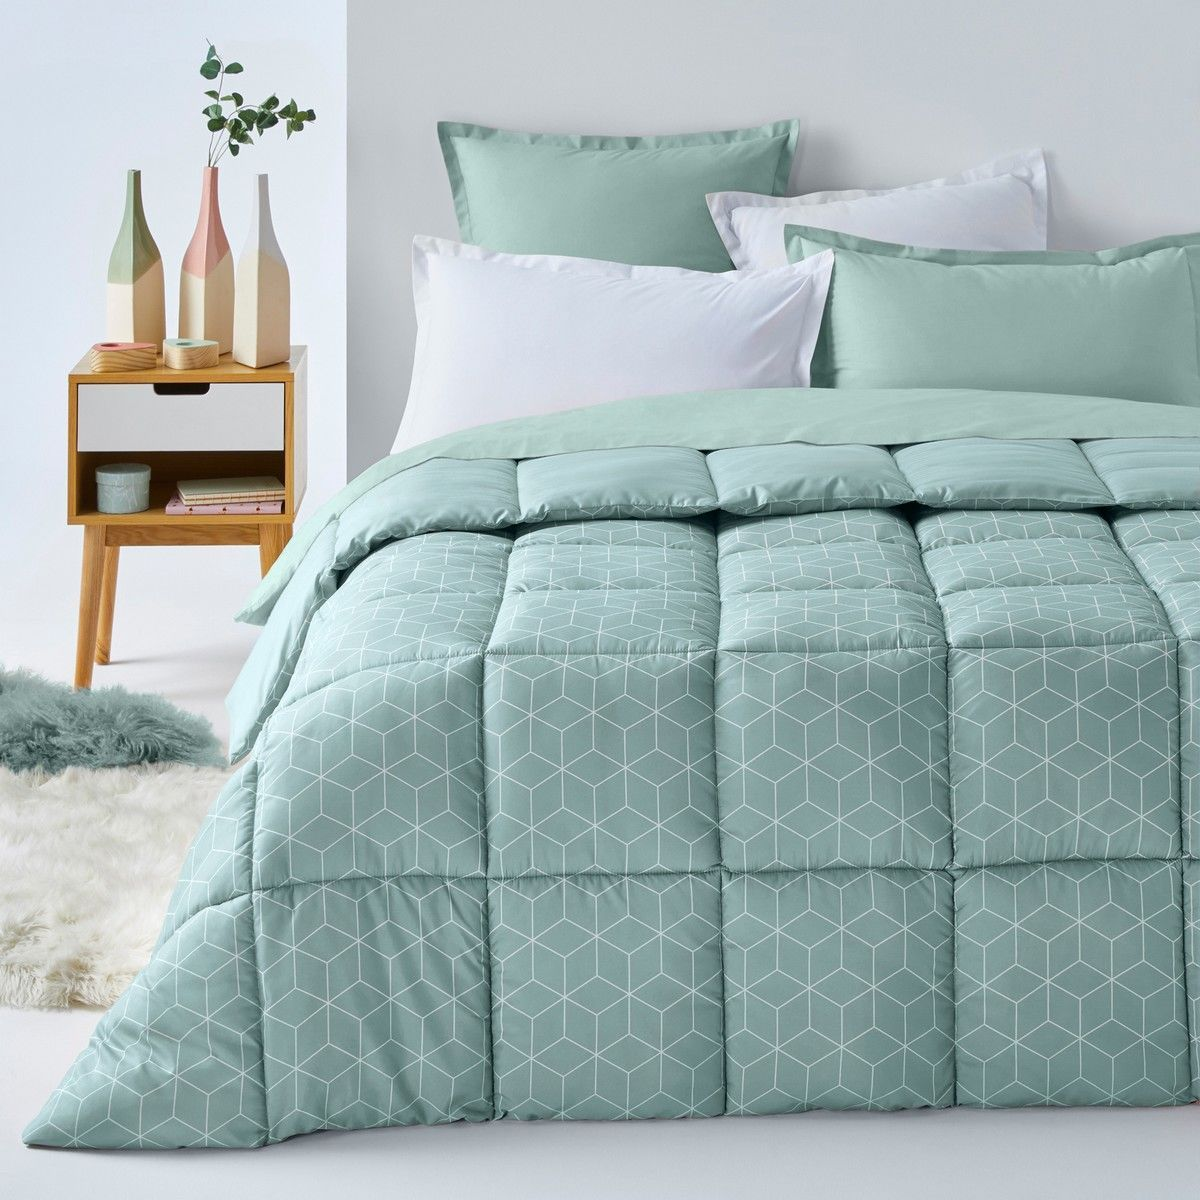 La Redoute Decio Microfibre Duvet Green White Rrp Listing In The Duvets Covers Sets Bedroom Home Garden Category On Ebid United Kingdom